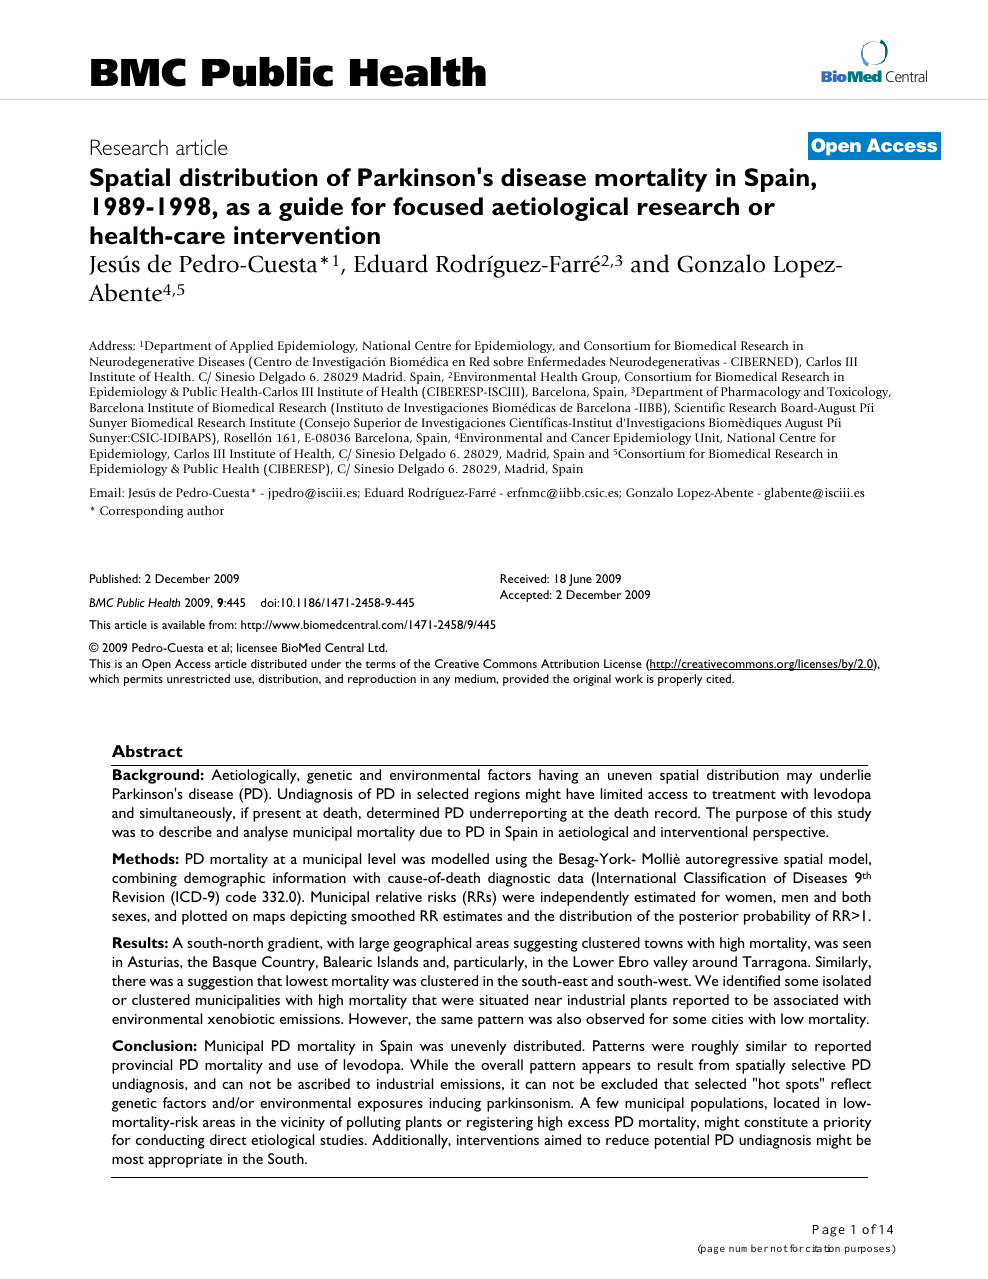 Spatial Distribution Of Parkinson S Disease Mortality In